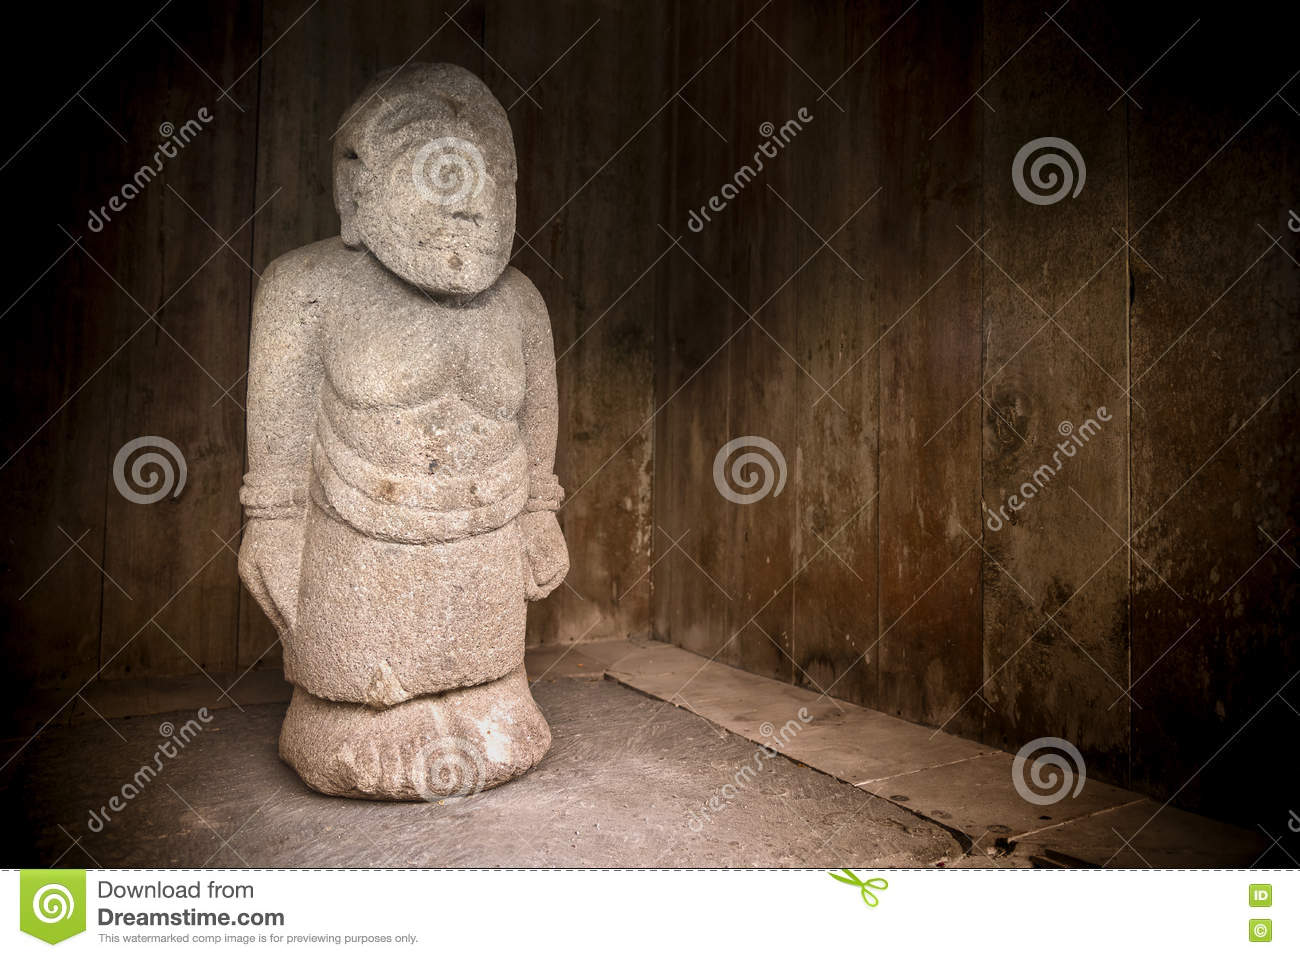 Stone Sculpture Of Man From Candi Cetho Jawa Indonesia Stock Image